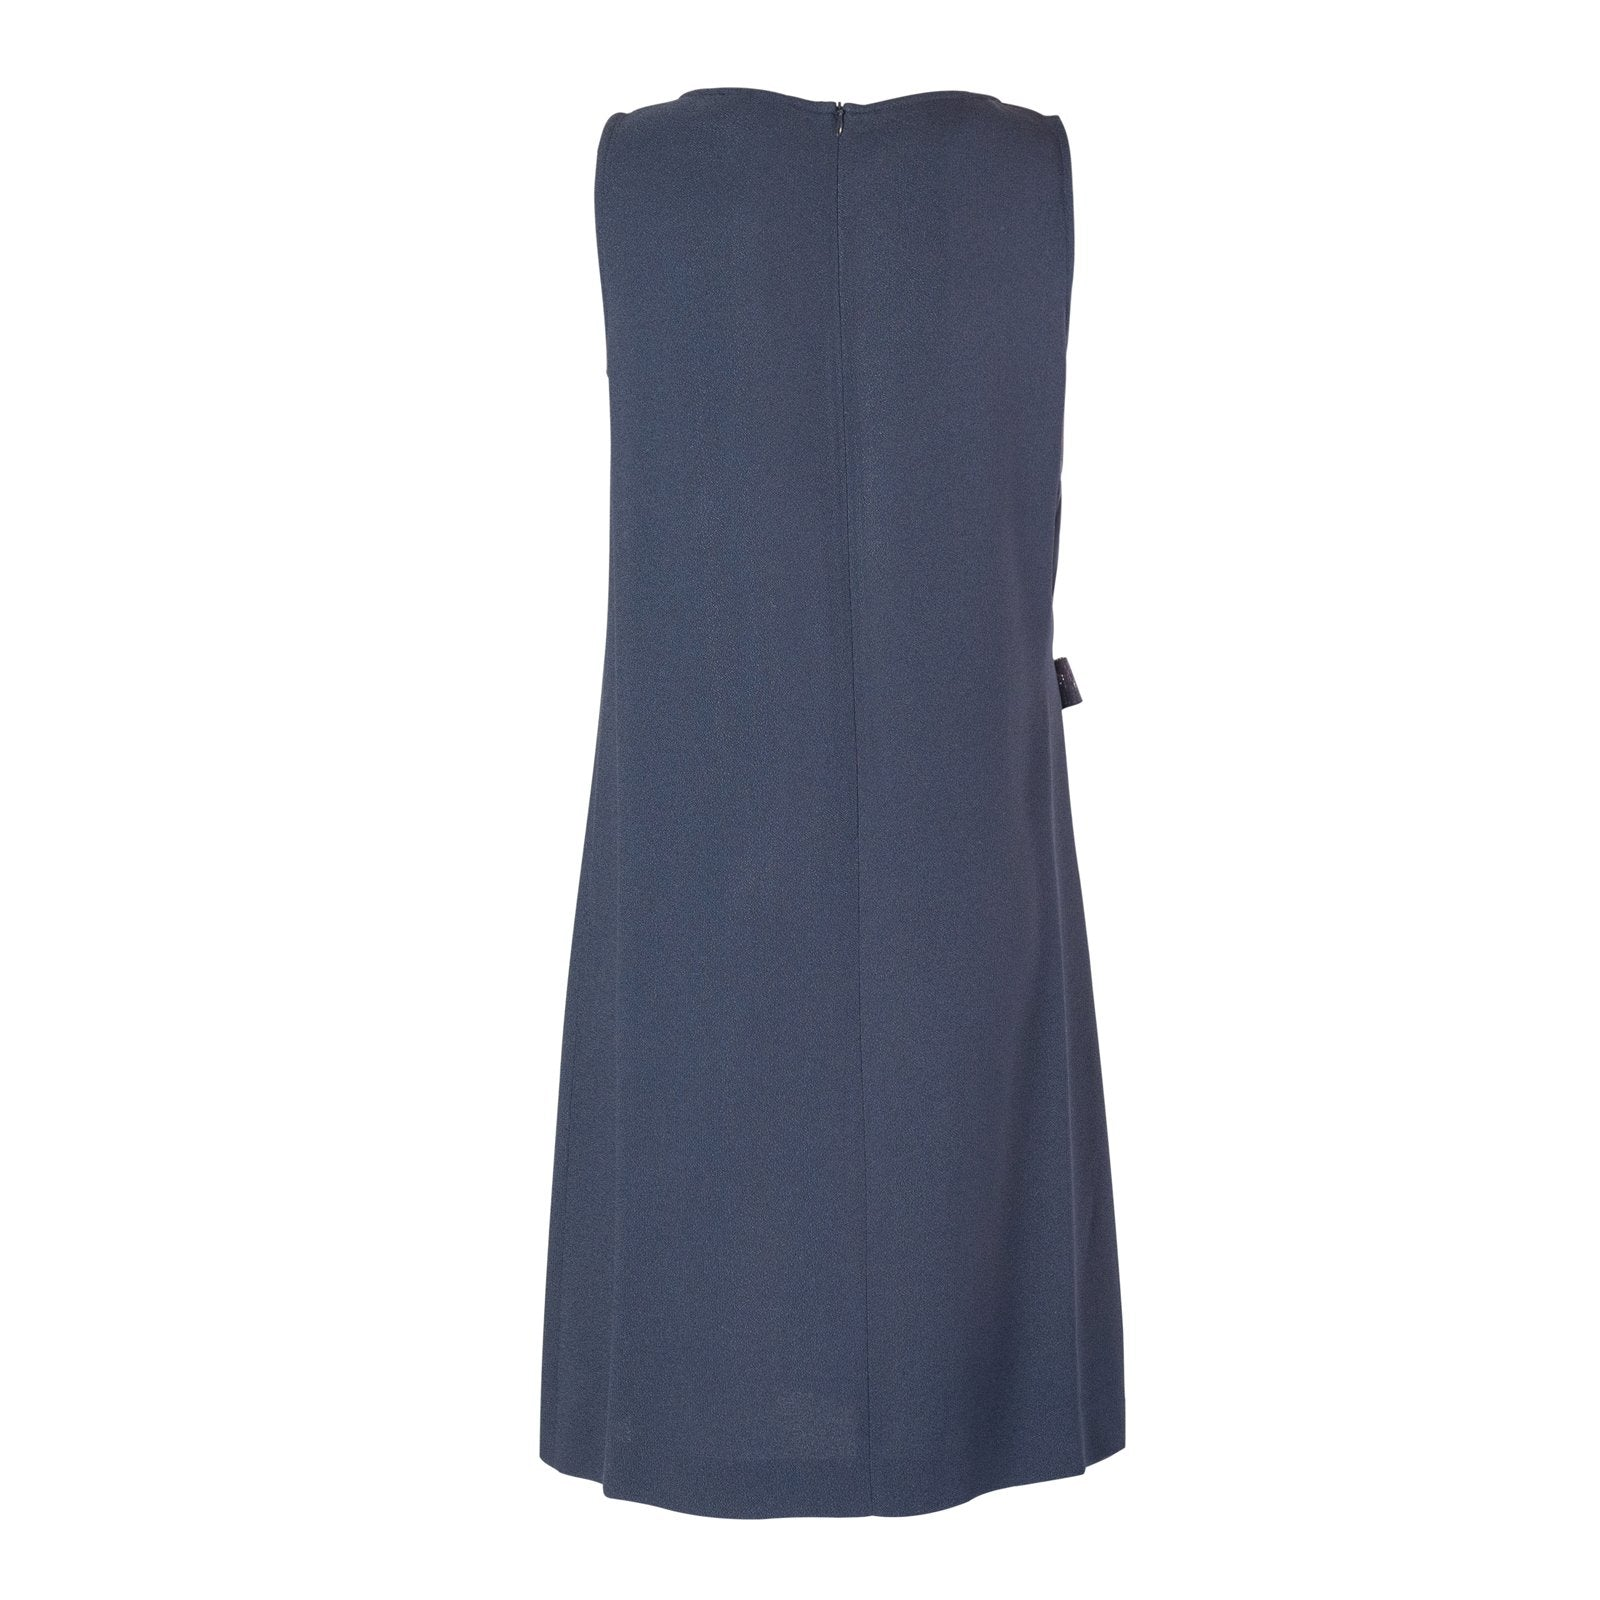 Lupine Women Sleeveless Silk Dress in Blue - Jennifer Tattanelli